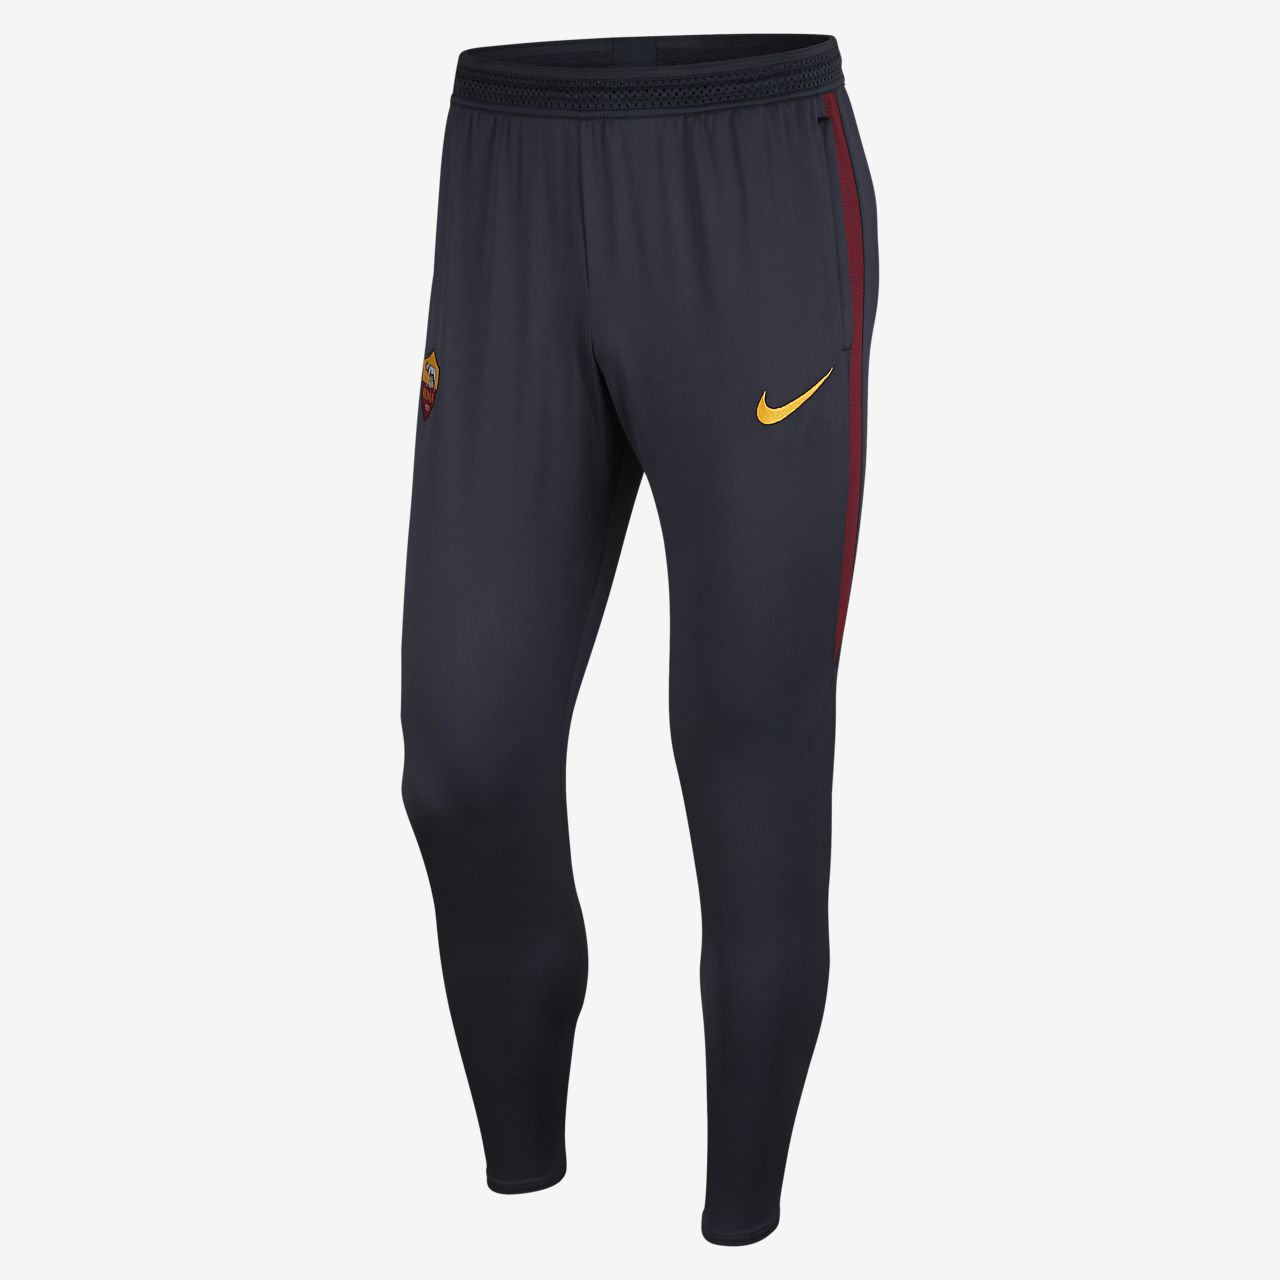 Nike Dri-FIT A.S. Roma Strike Men's Football Pants